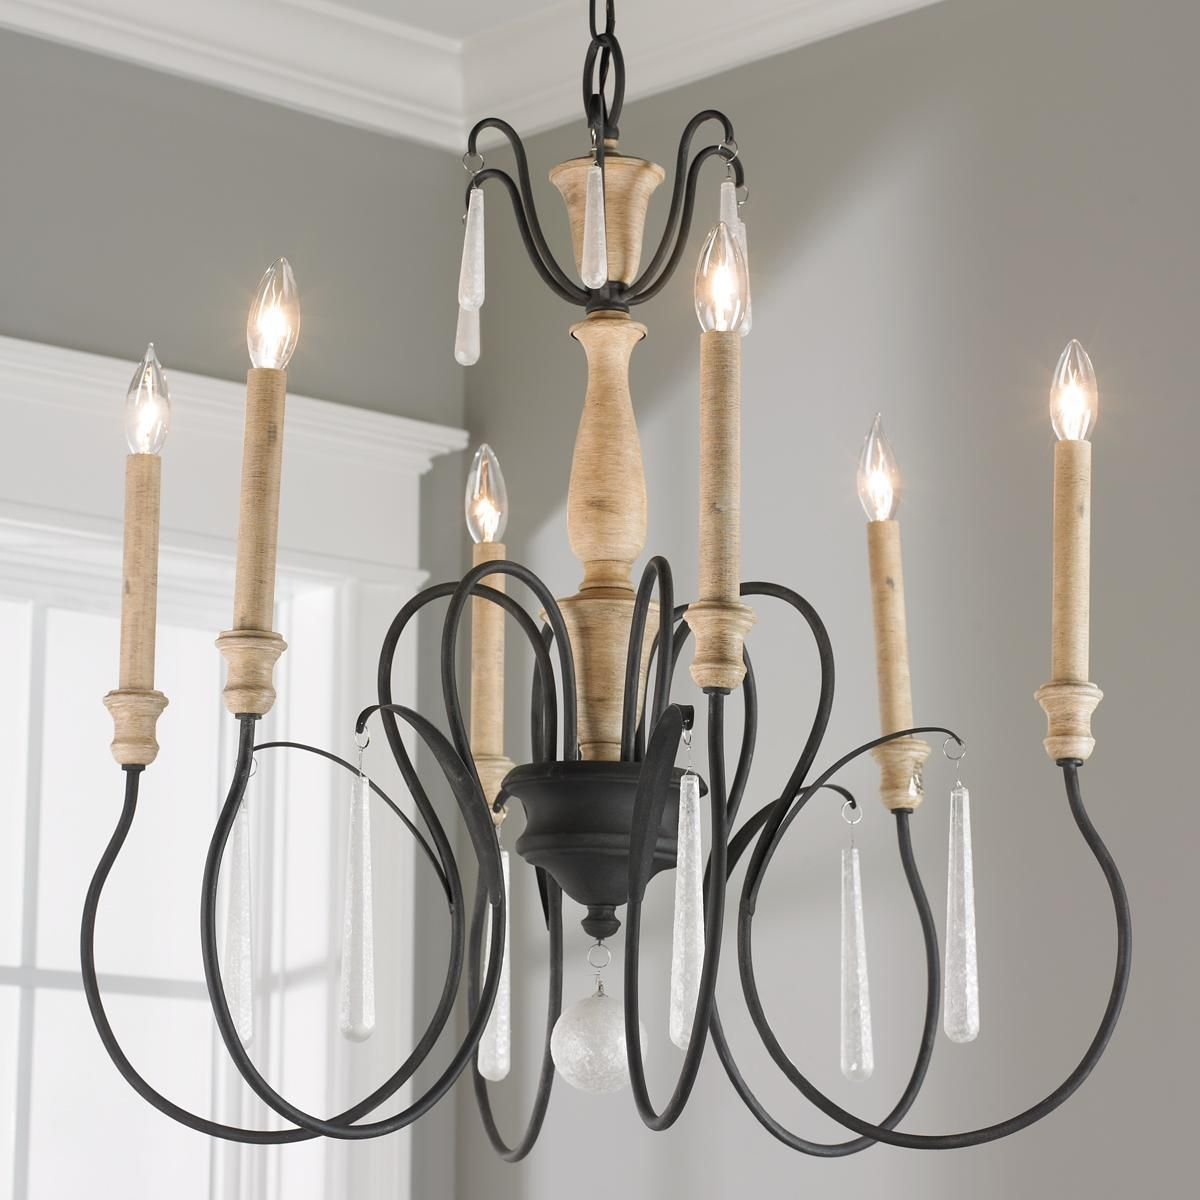 Parchment glass accent chandelier 6 light chandelier shades parchment glass accent 6 light chandelier shades of light parchment glass accent chandelier arubaitofo Choice Image